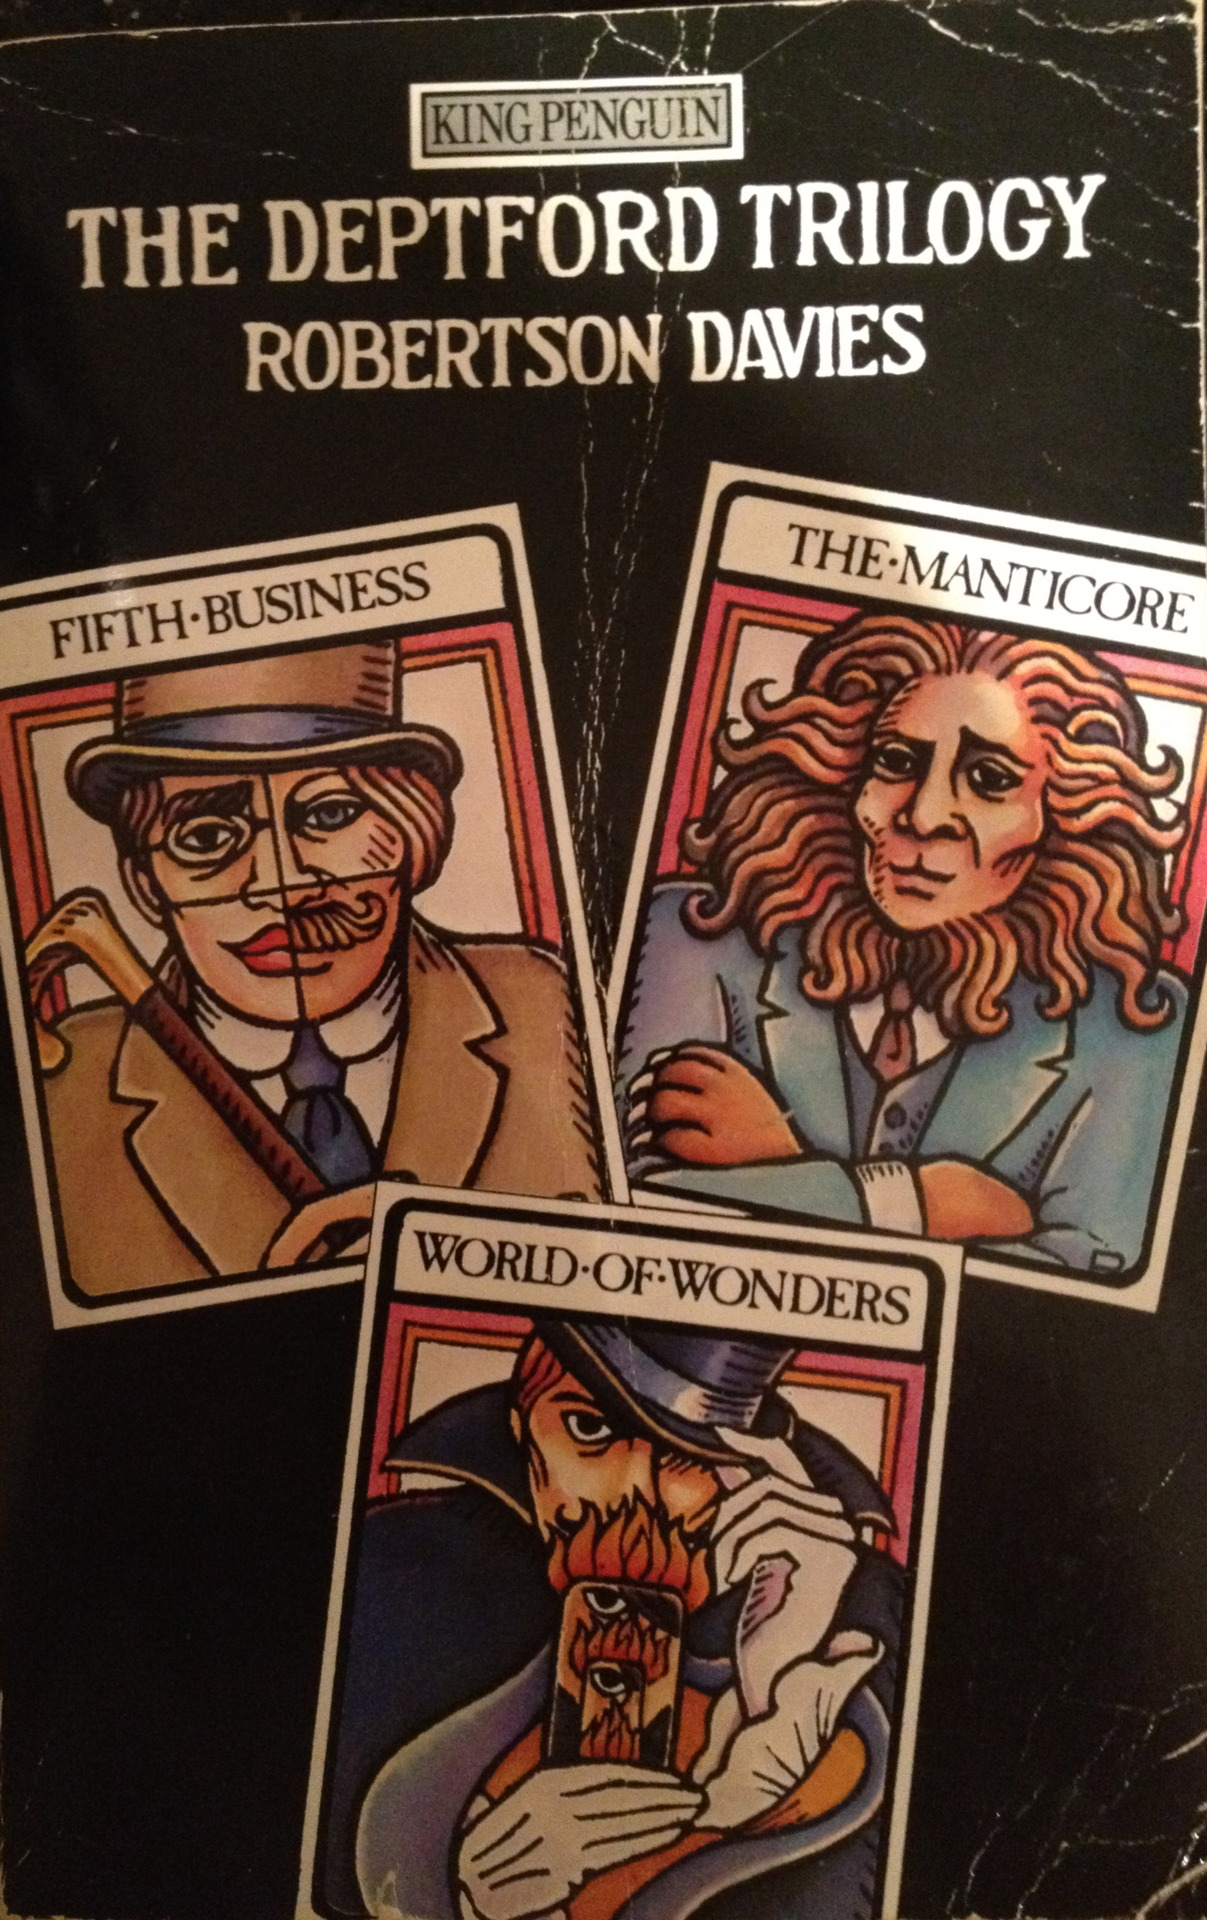 In the early 1980s, when I first read these three novels by Robertson Davies, I knew nothing about him, though he was perhaps the most famous writer in Canada by then. I sought out and read everything he had ever written, as well as everything he continued to write in the next decade until his death. It was a satisfying journey. It is a journey I would take again, though I don't often re-read books anymore.   [Originally posted on my discontinued This Old Book Tumblr.]